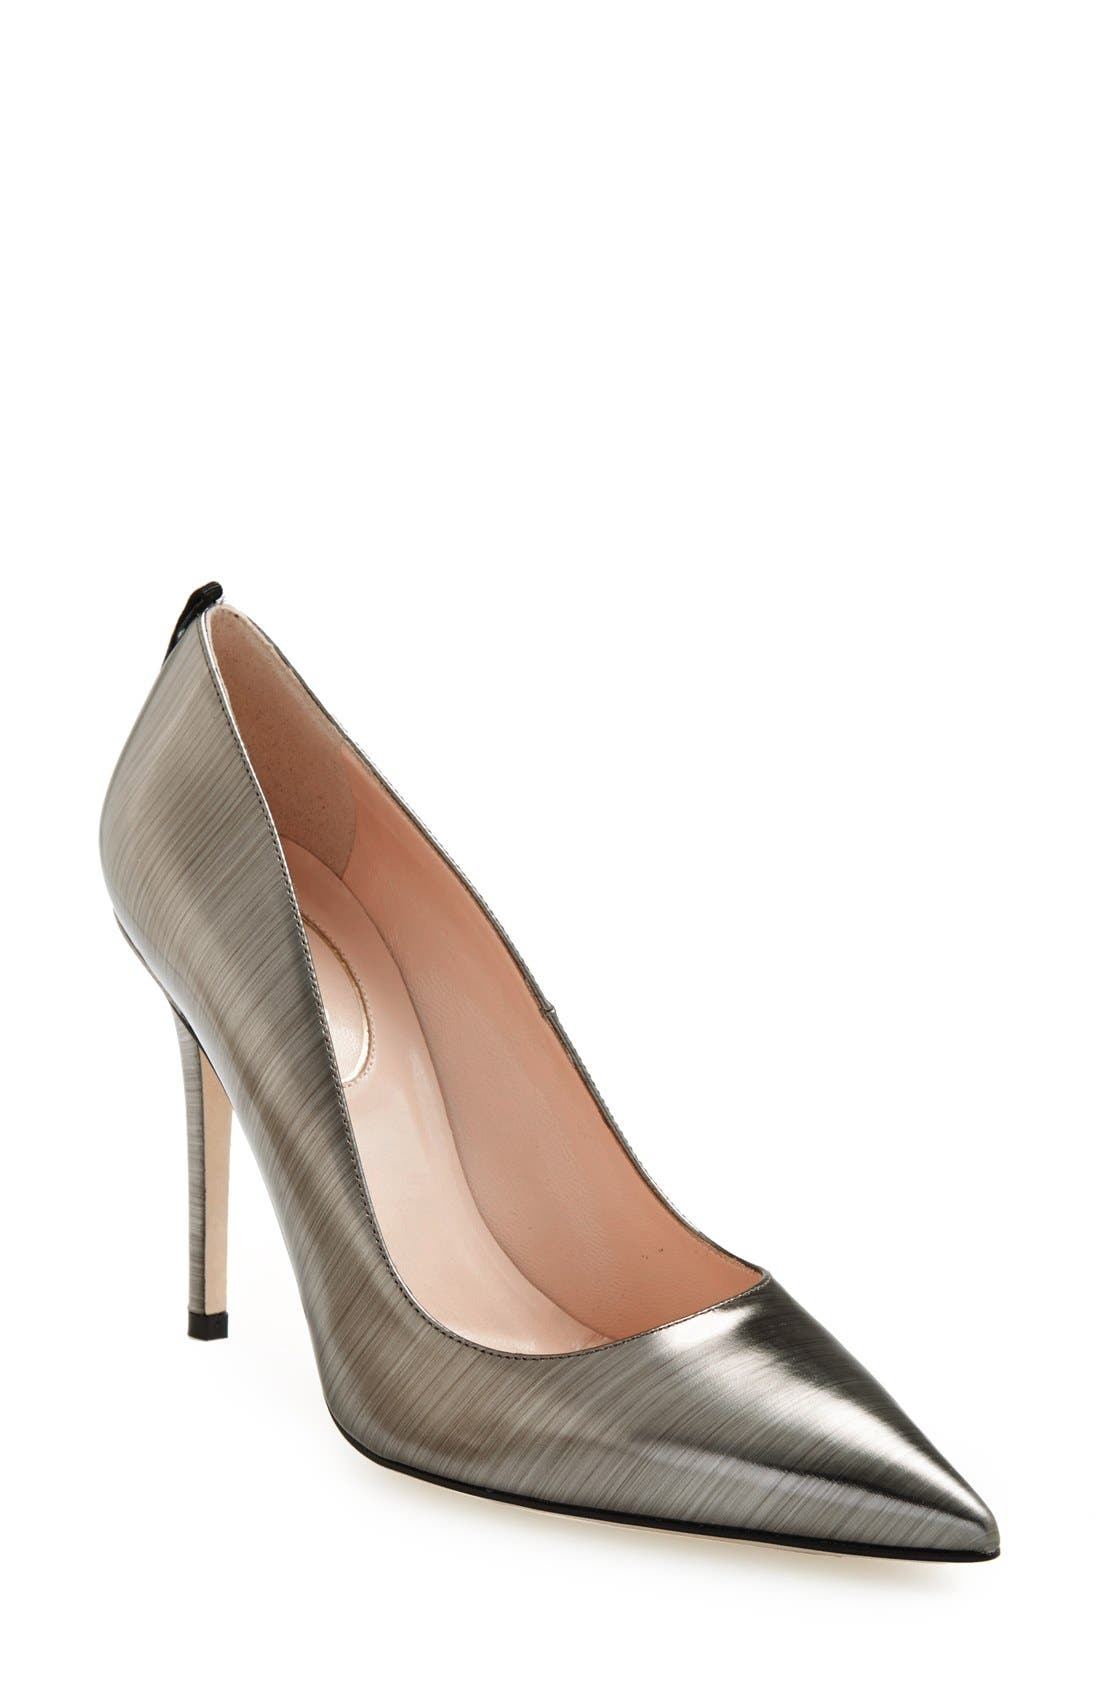 'Fawn' Specchio Leather Pump,                         Main,                         color, 020